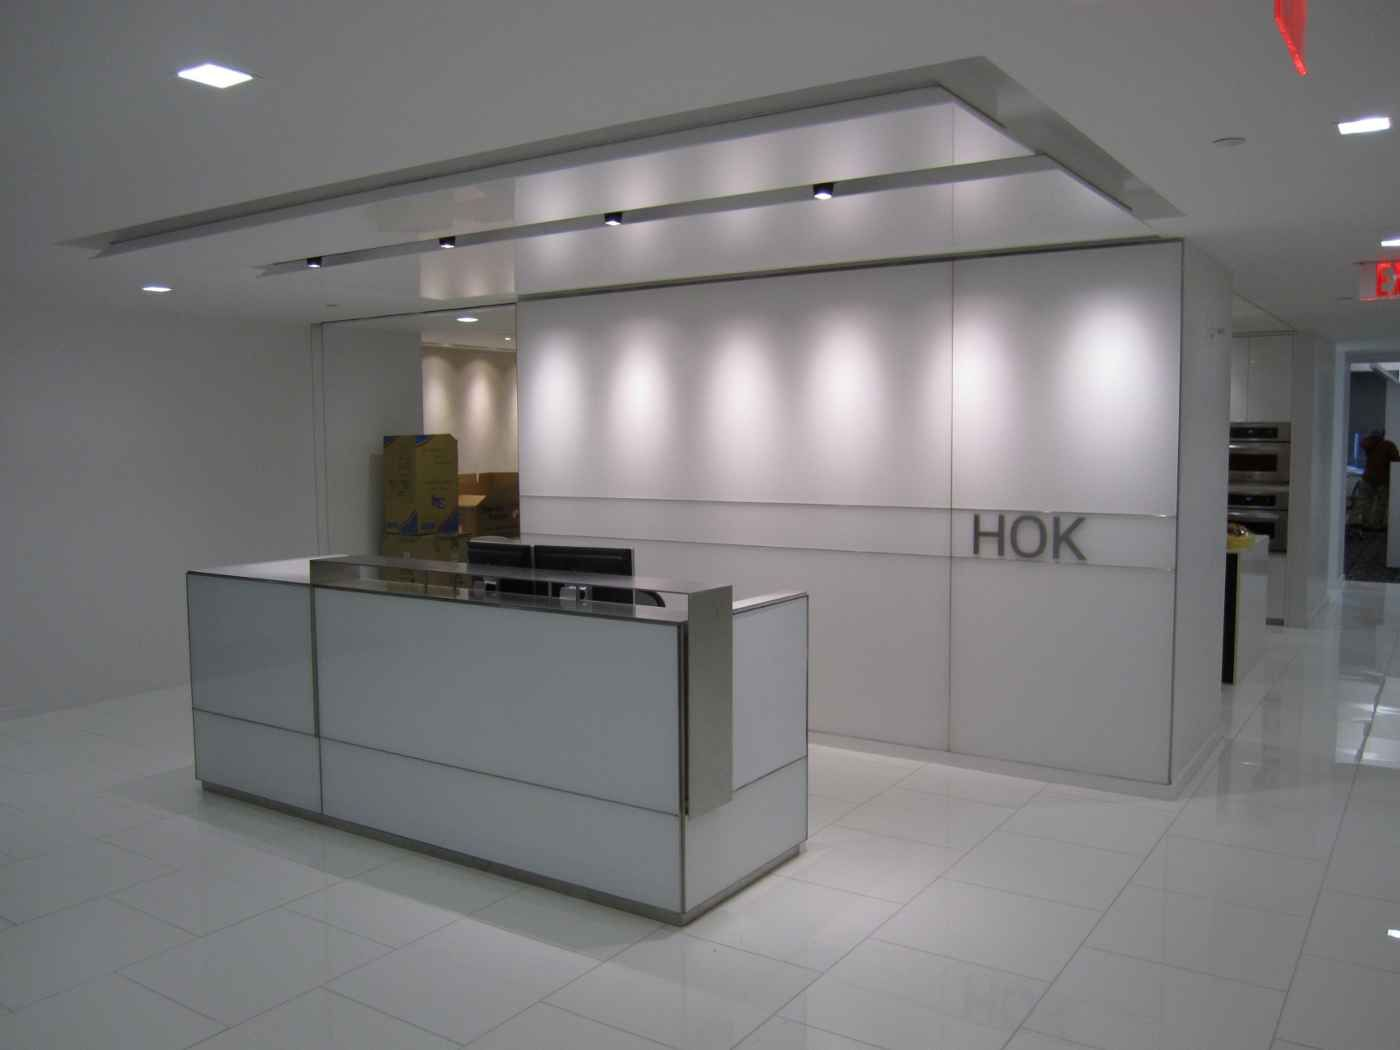 office reception counter 1000 images about reception counters on pinterest reception desks receptions and lobbies boss office products plexiglass reception